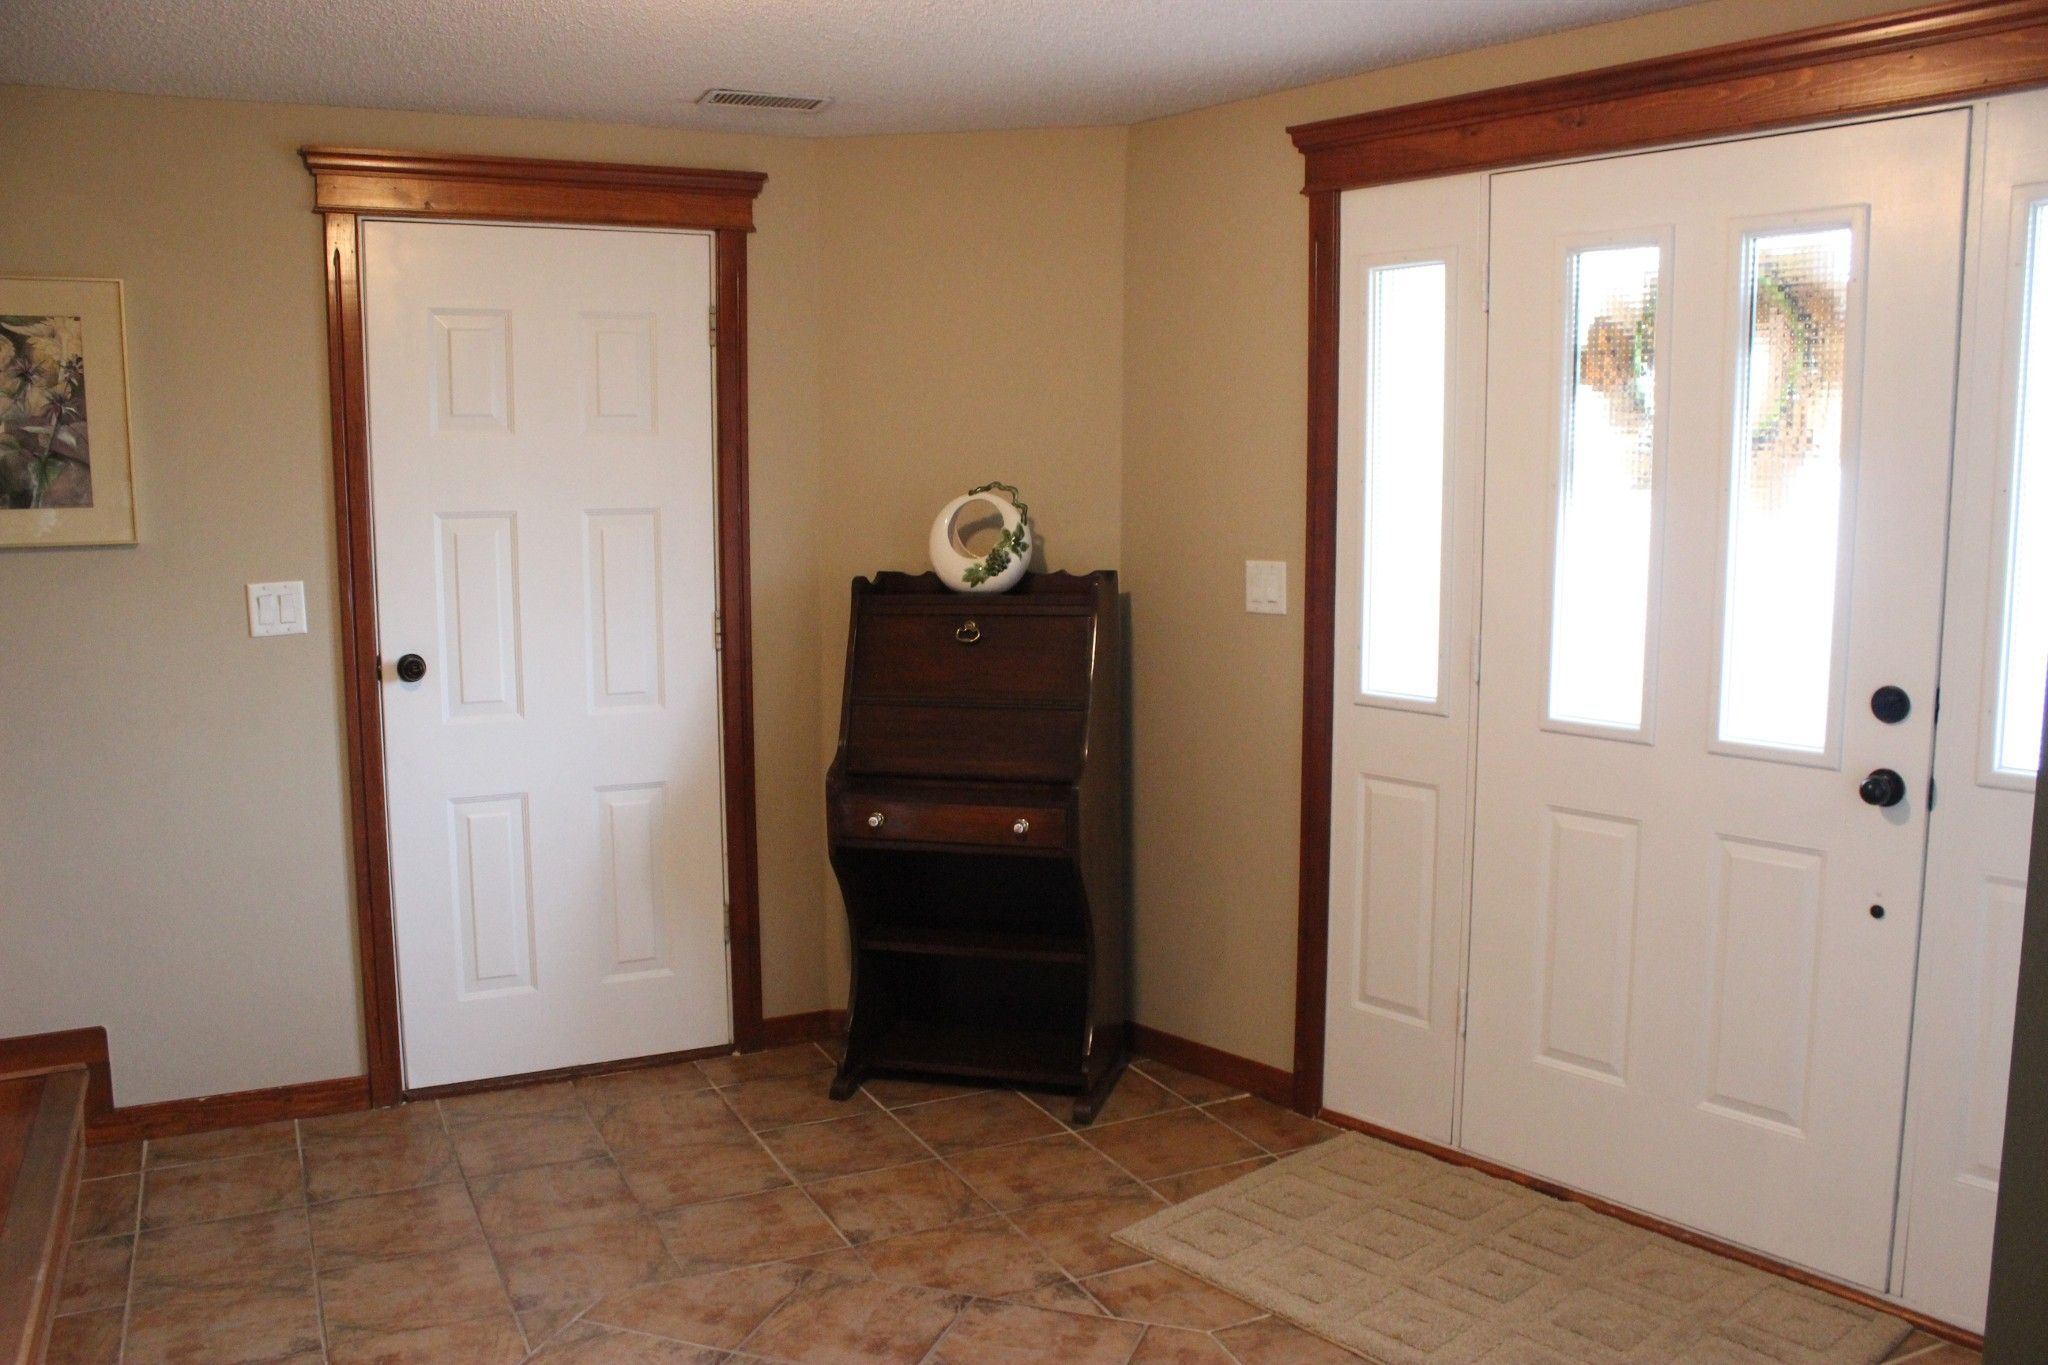 Photo 20: Photos: 3461 Navatanee Drive in Kamloops: South Thompson Valley House for sale : MLS®# 150033